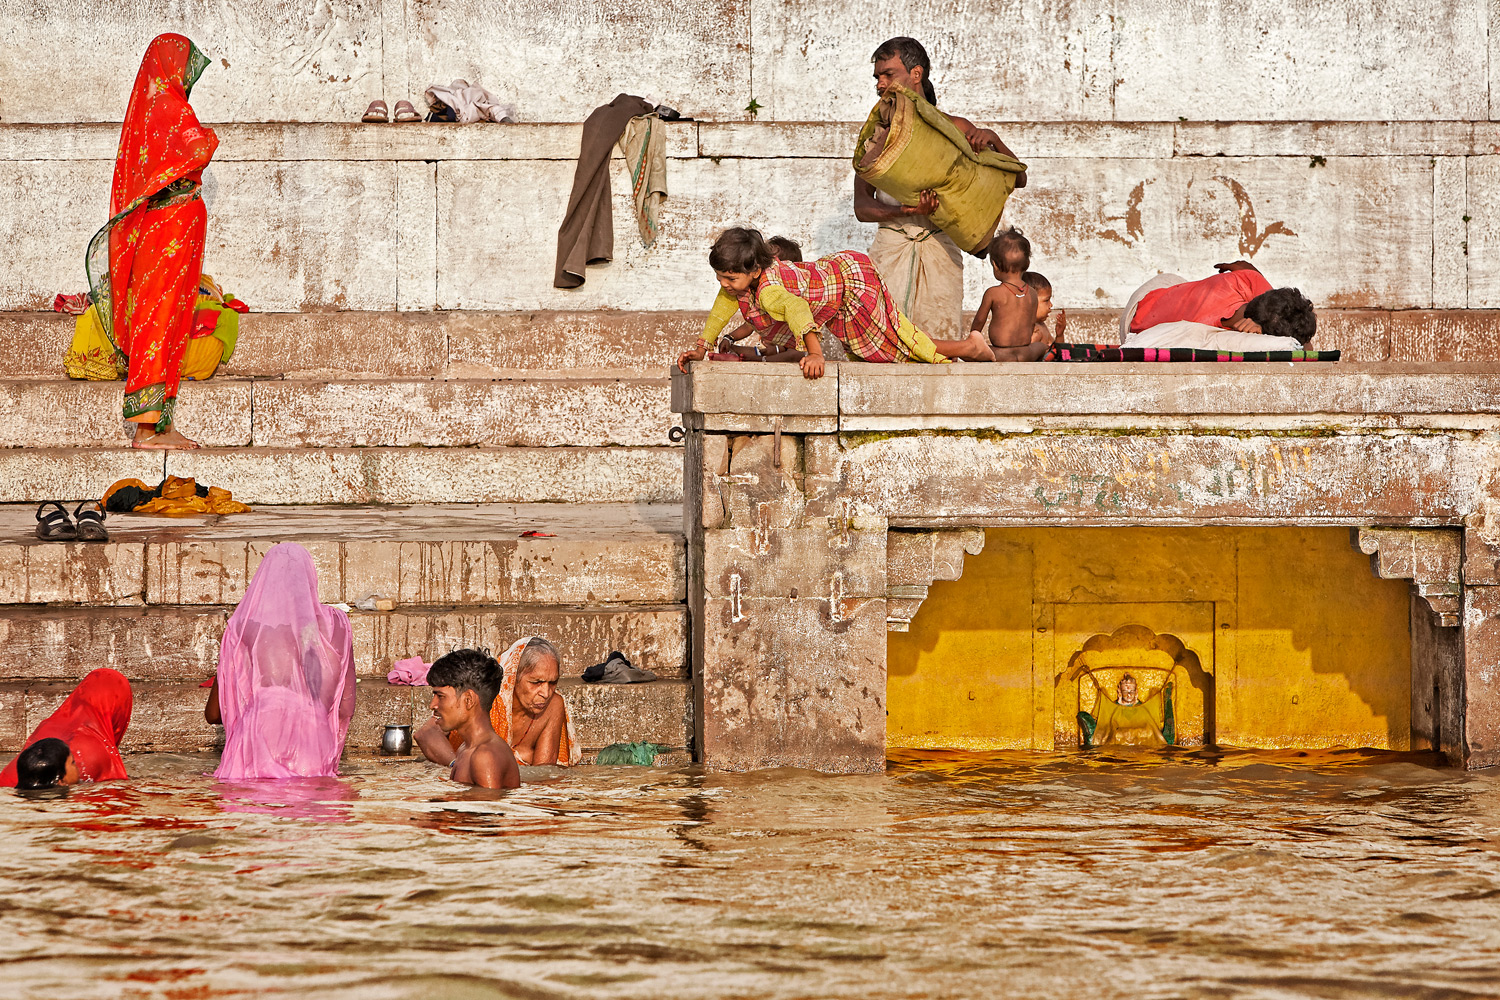 Morning ablutions on the ghats, Varanasi, India